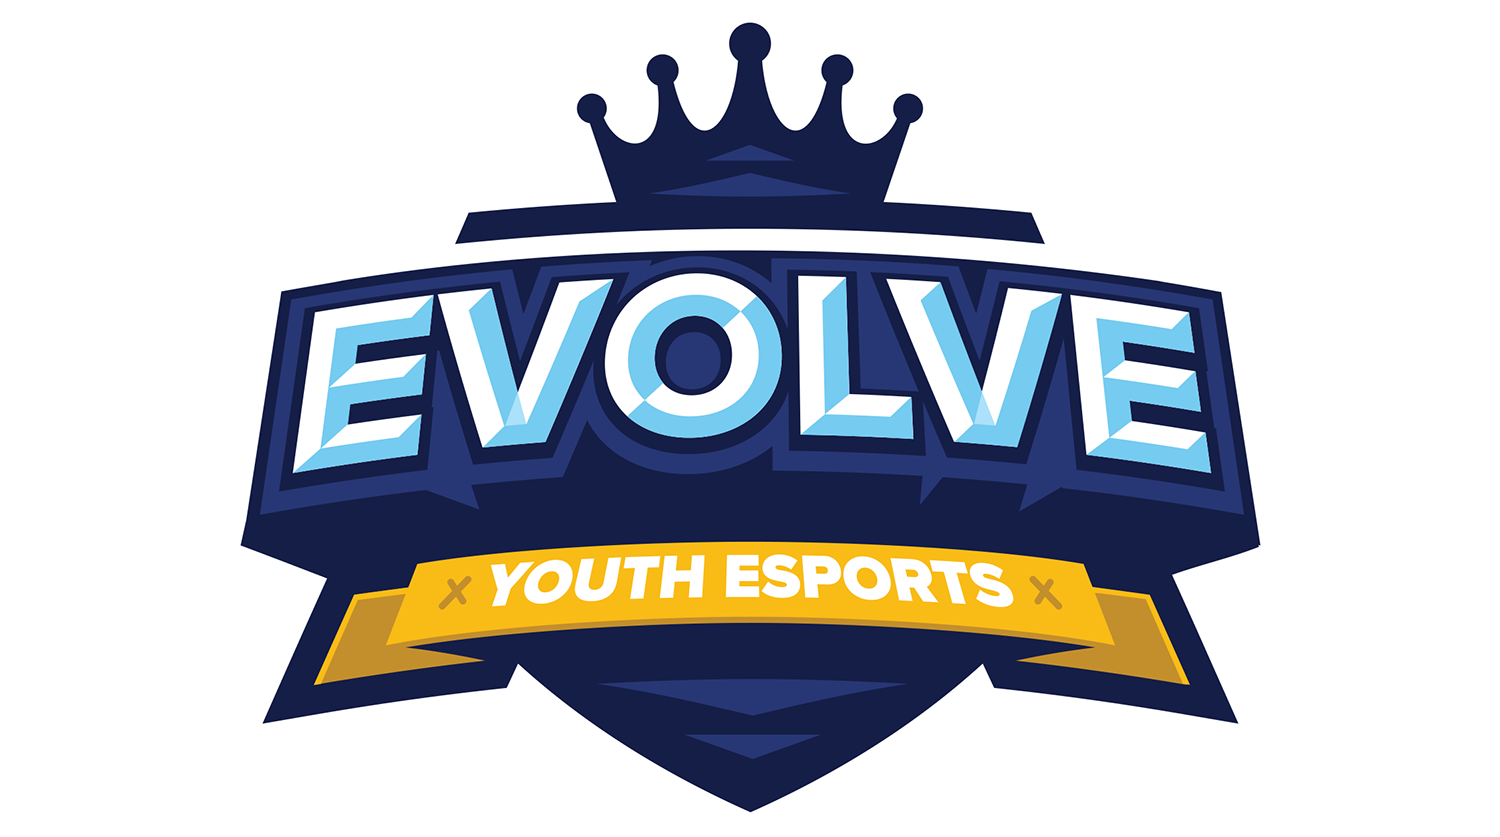 Evolve Youth Esports